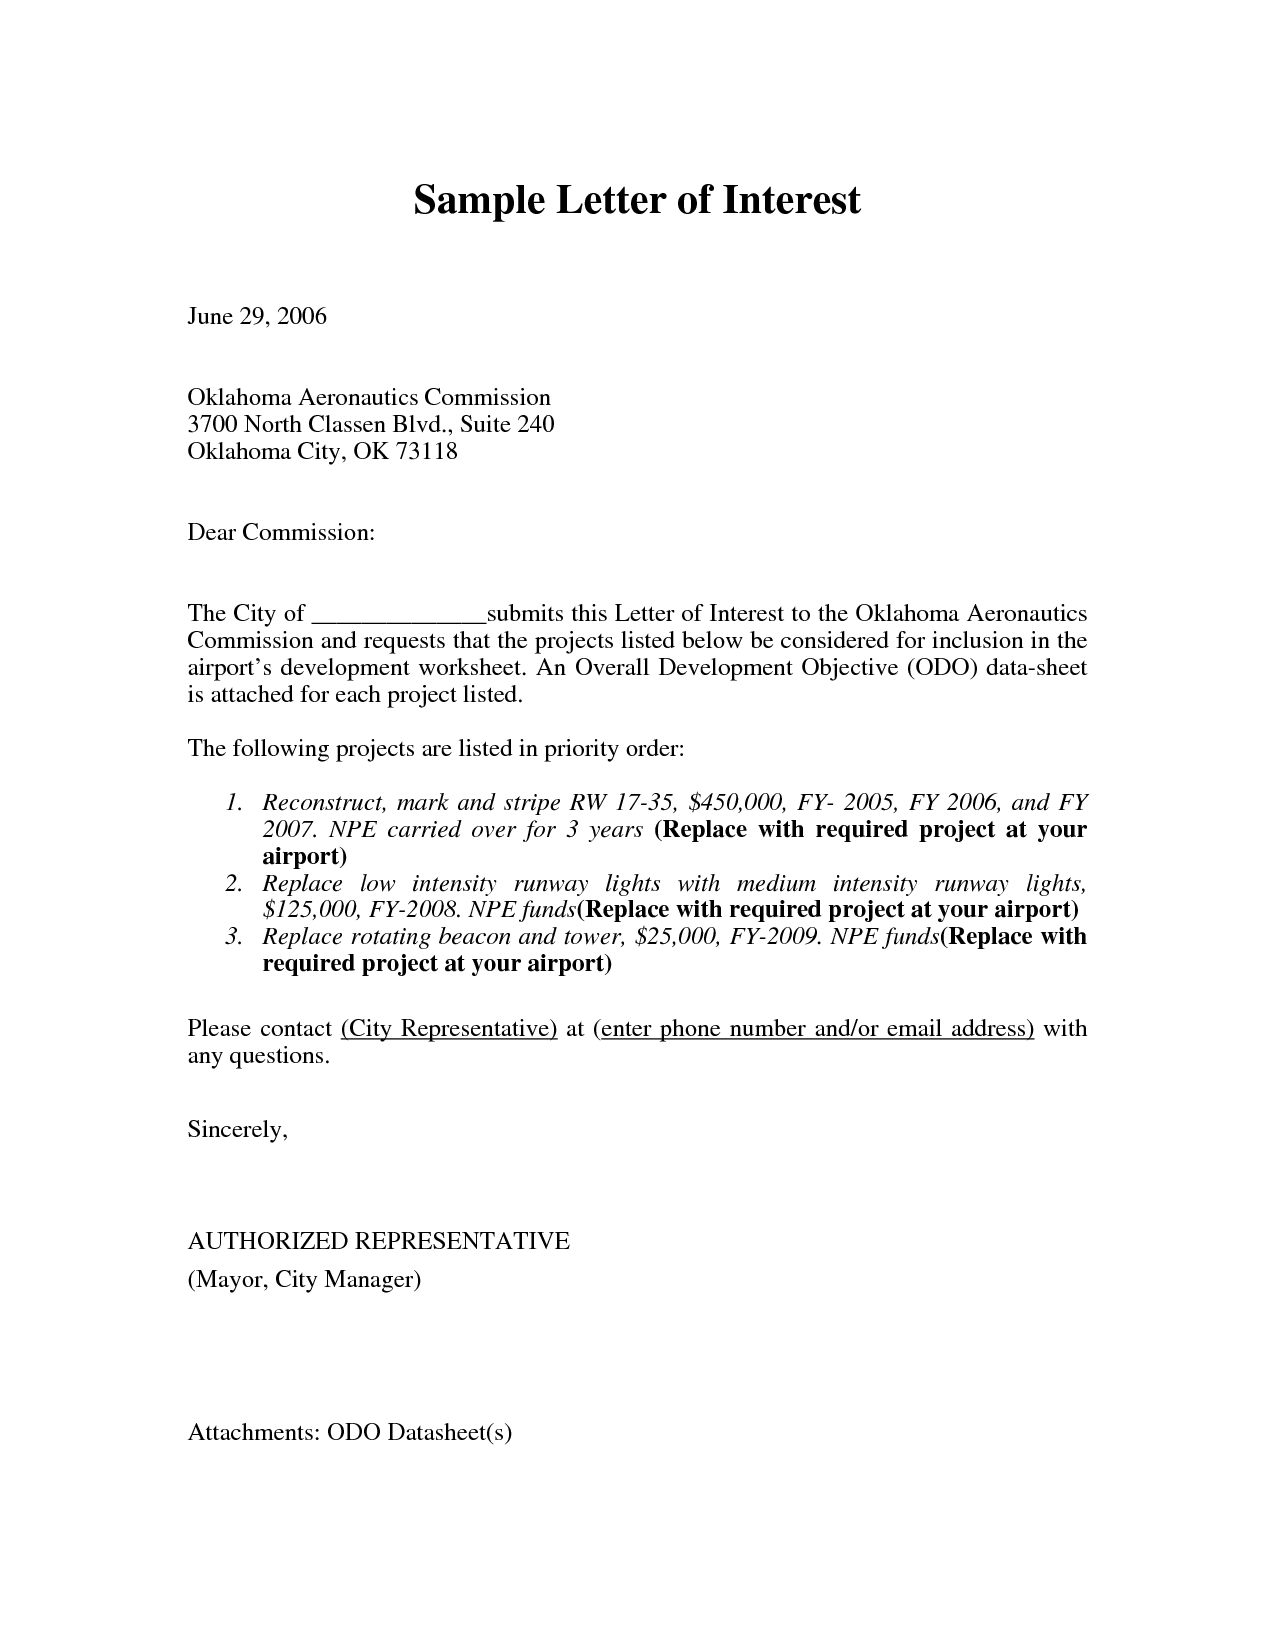 Letter of Interest Internal Position Sample and Letter of interest ...